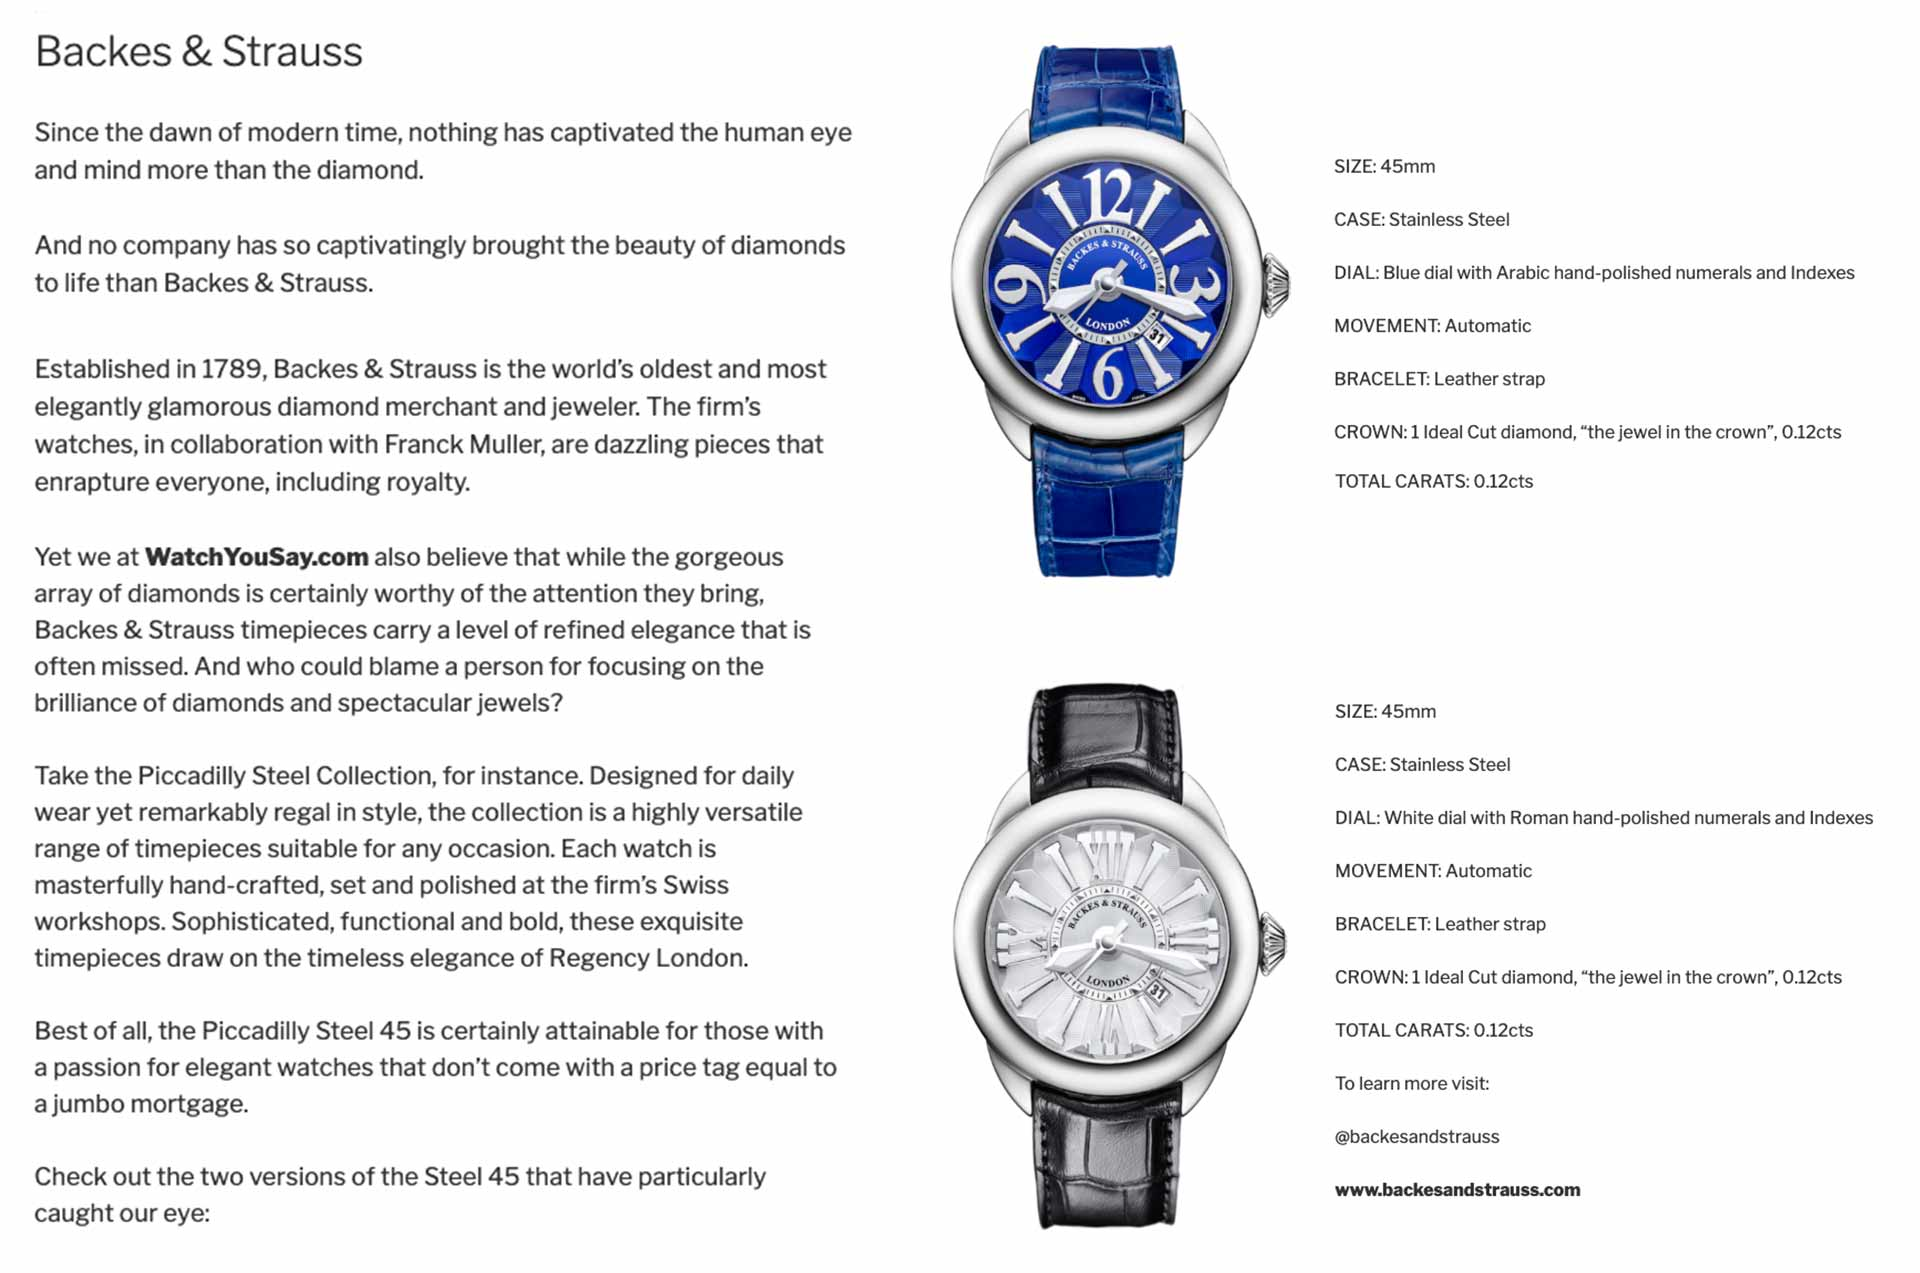 Piccadilly Steel collection watches for her and him